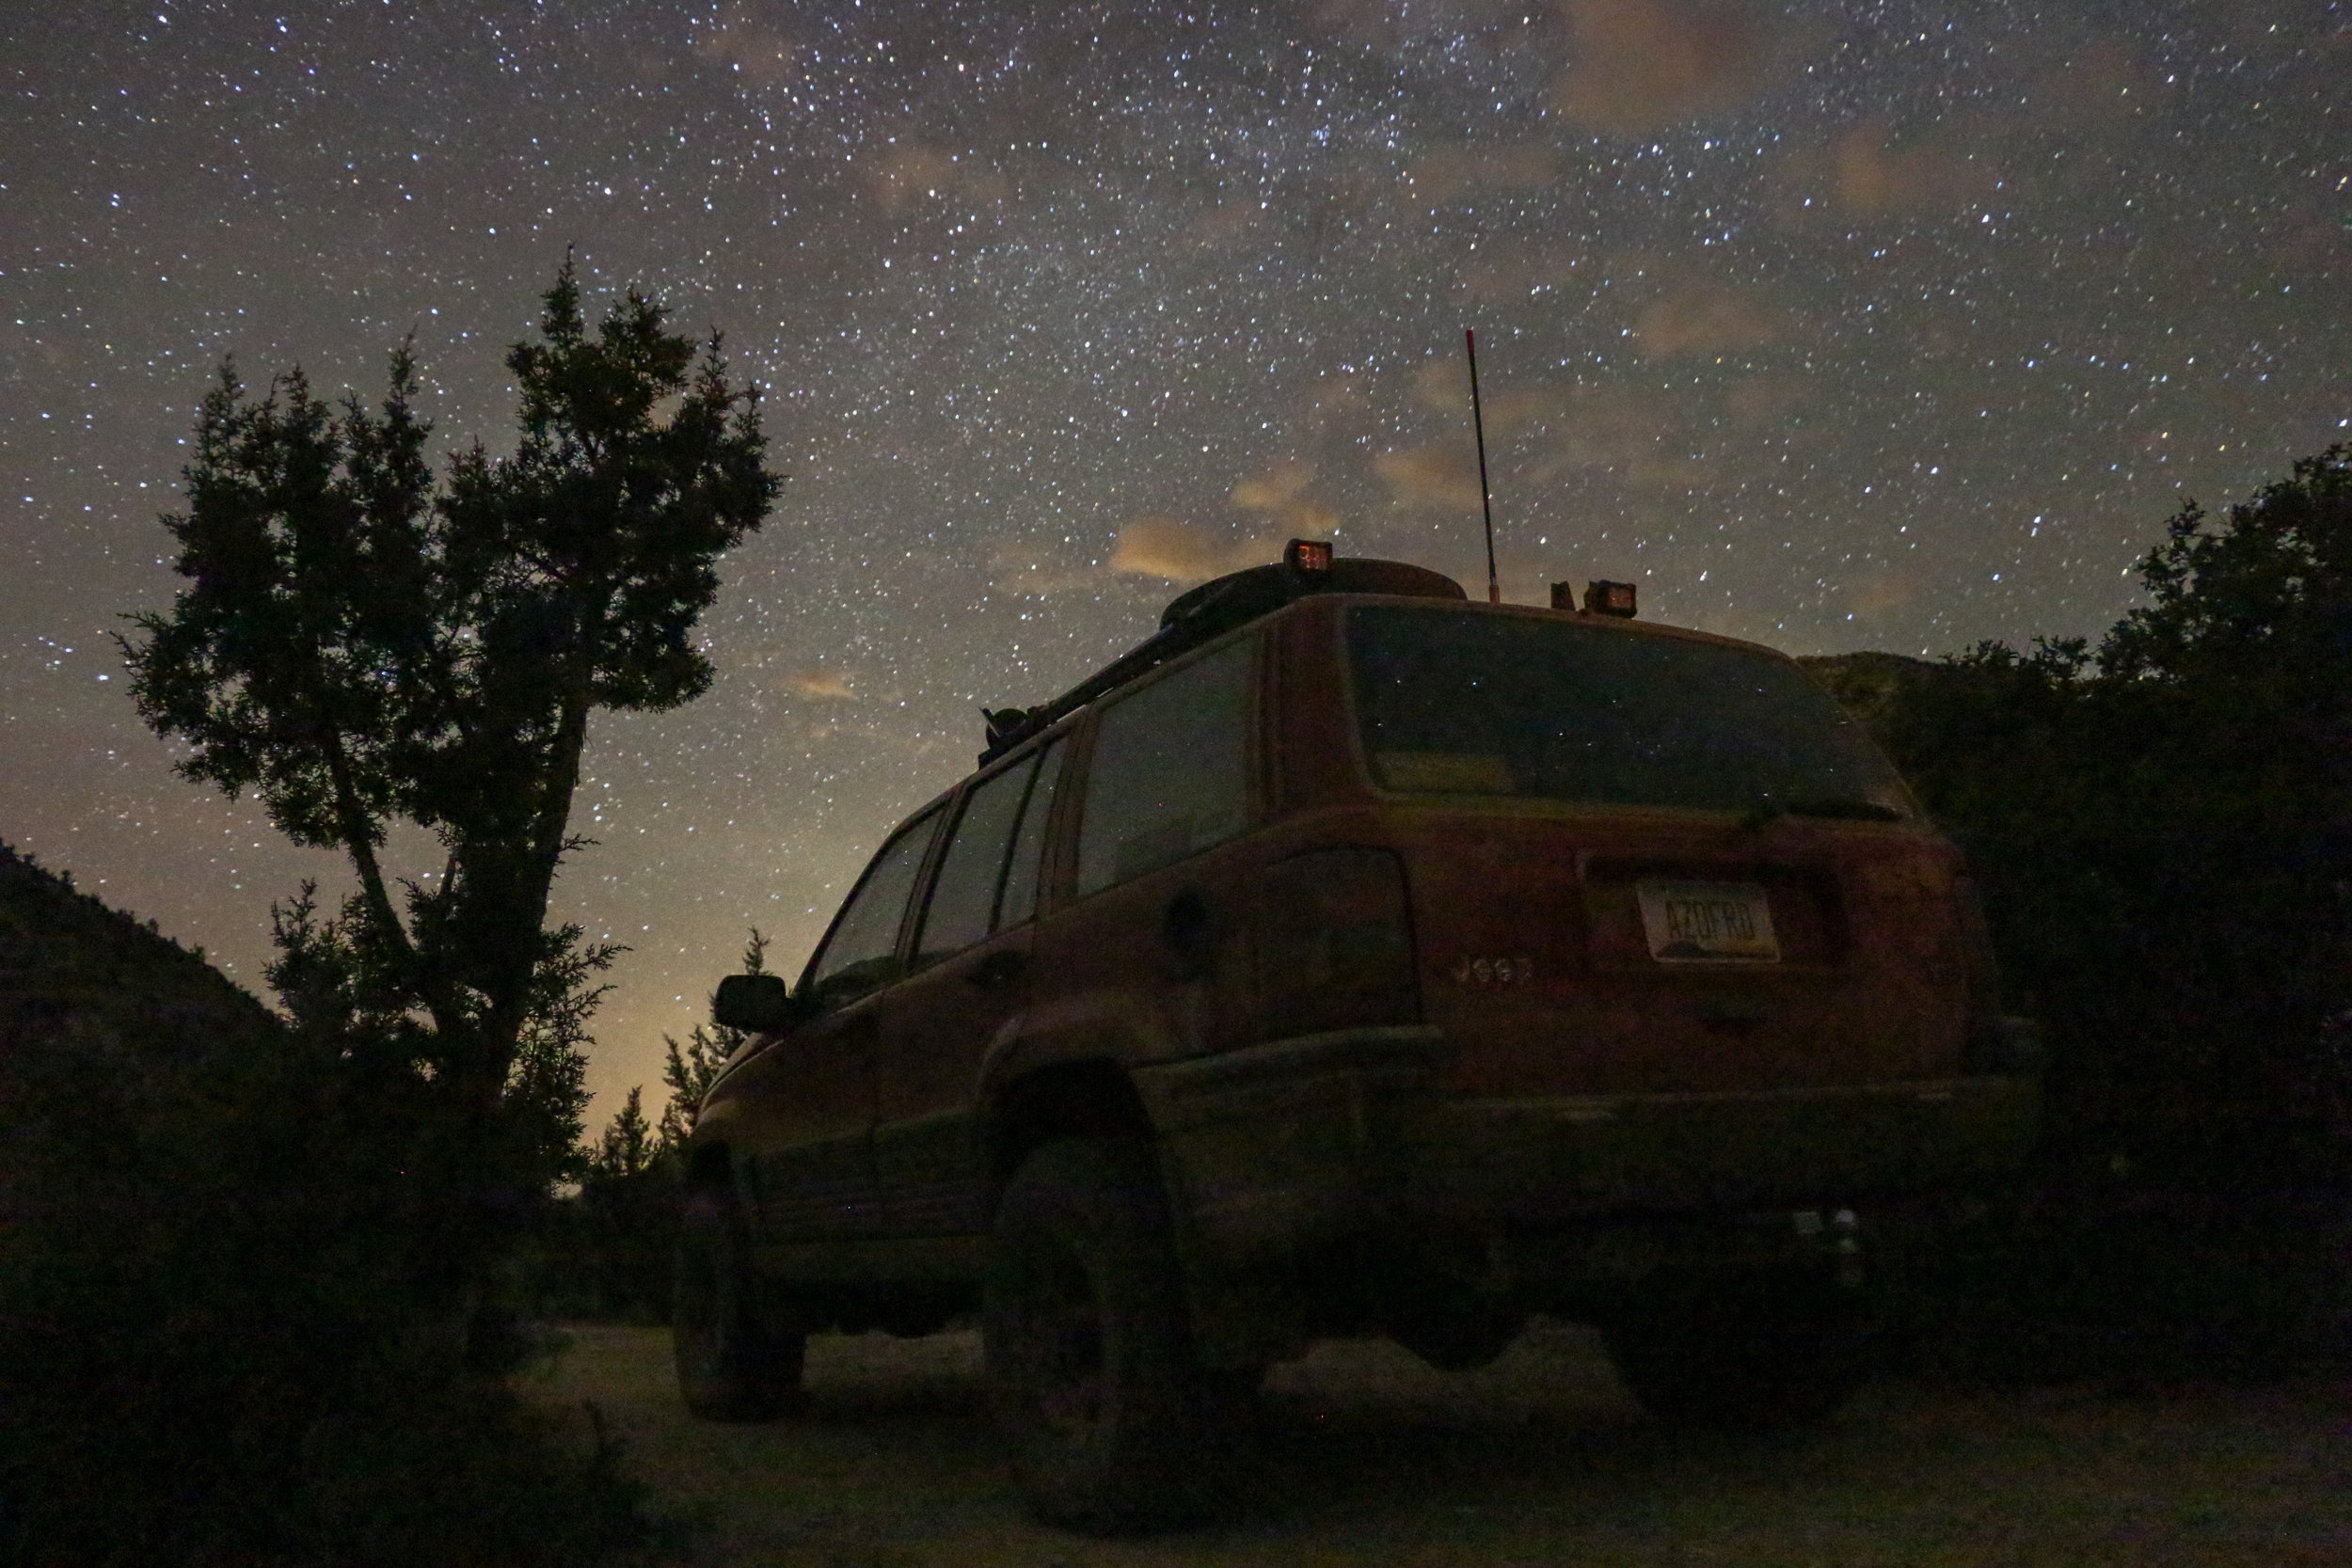 After 12 hours on the trail, it was nice to stop for the night.